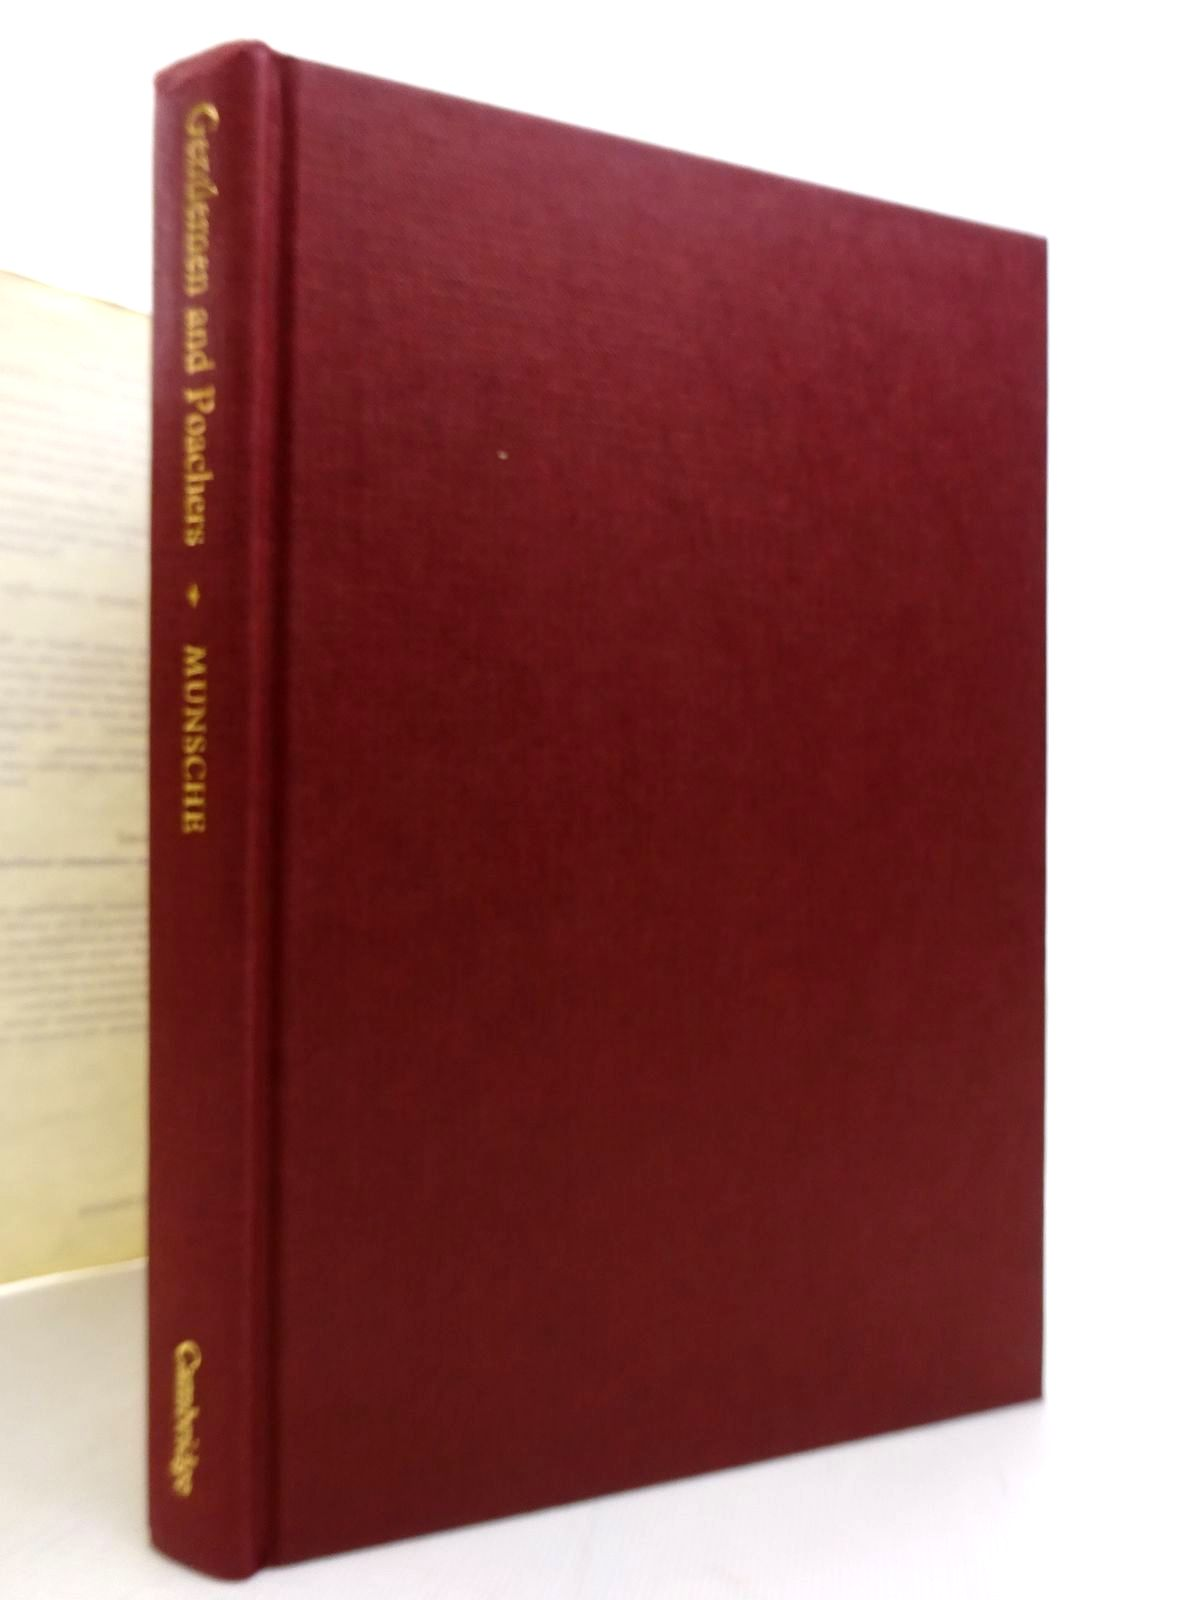 Photo of GENTLEMEN AND POACHERS: THE ENGLISH GAME LAWS 1671-1831 written by Munsche, P.B. published by Cambridge University Press (STOCK CODE: 1815869)  for sale by Stella & Rose's Books